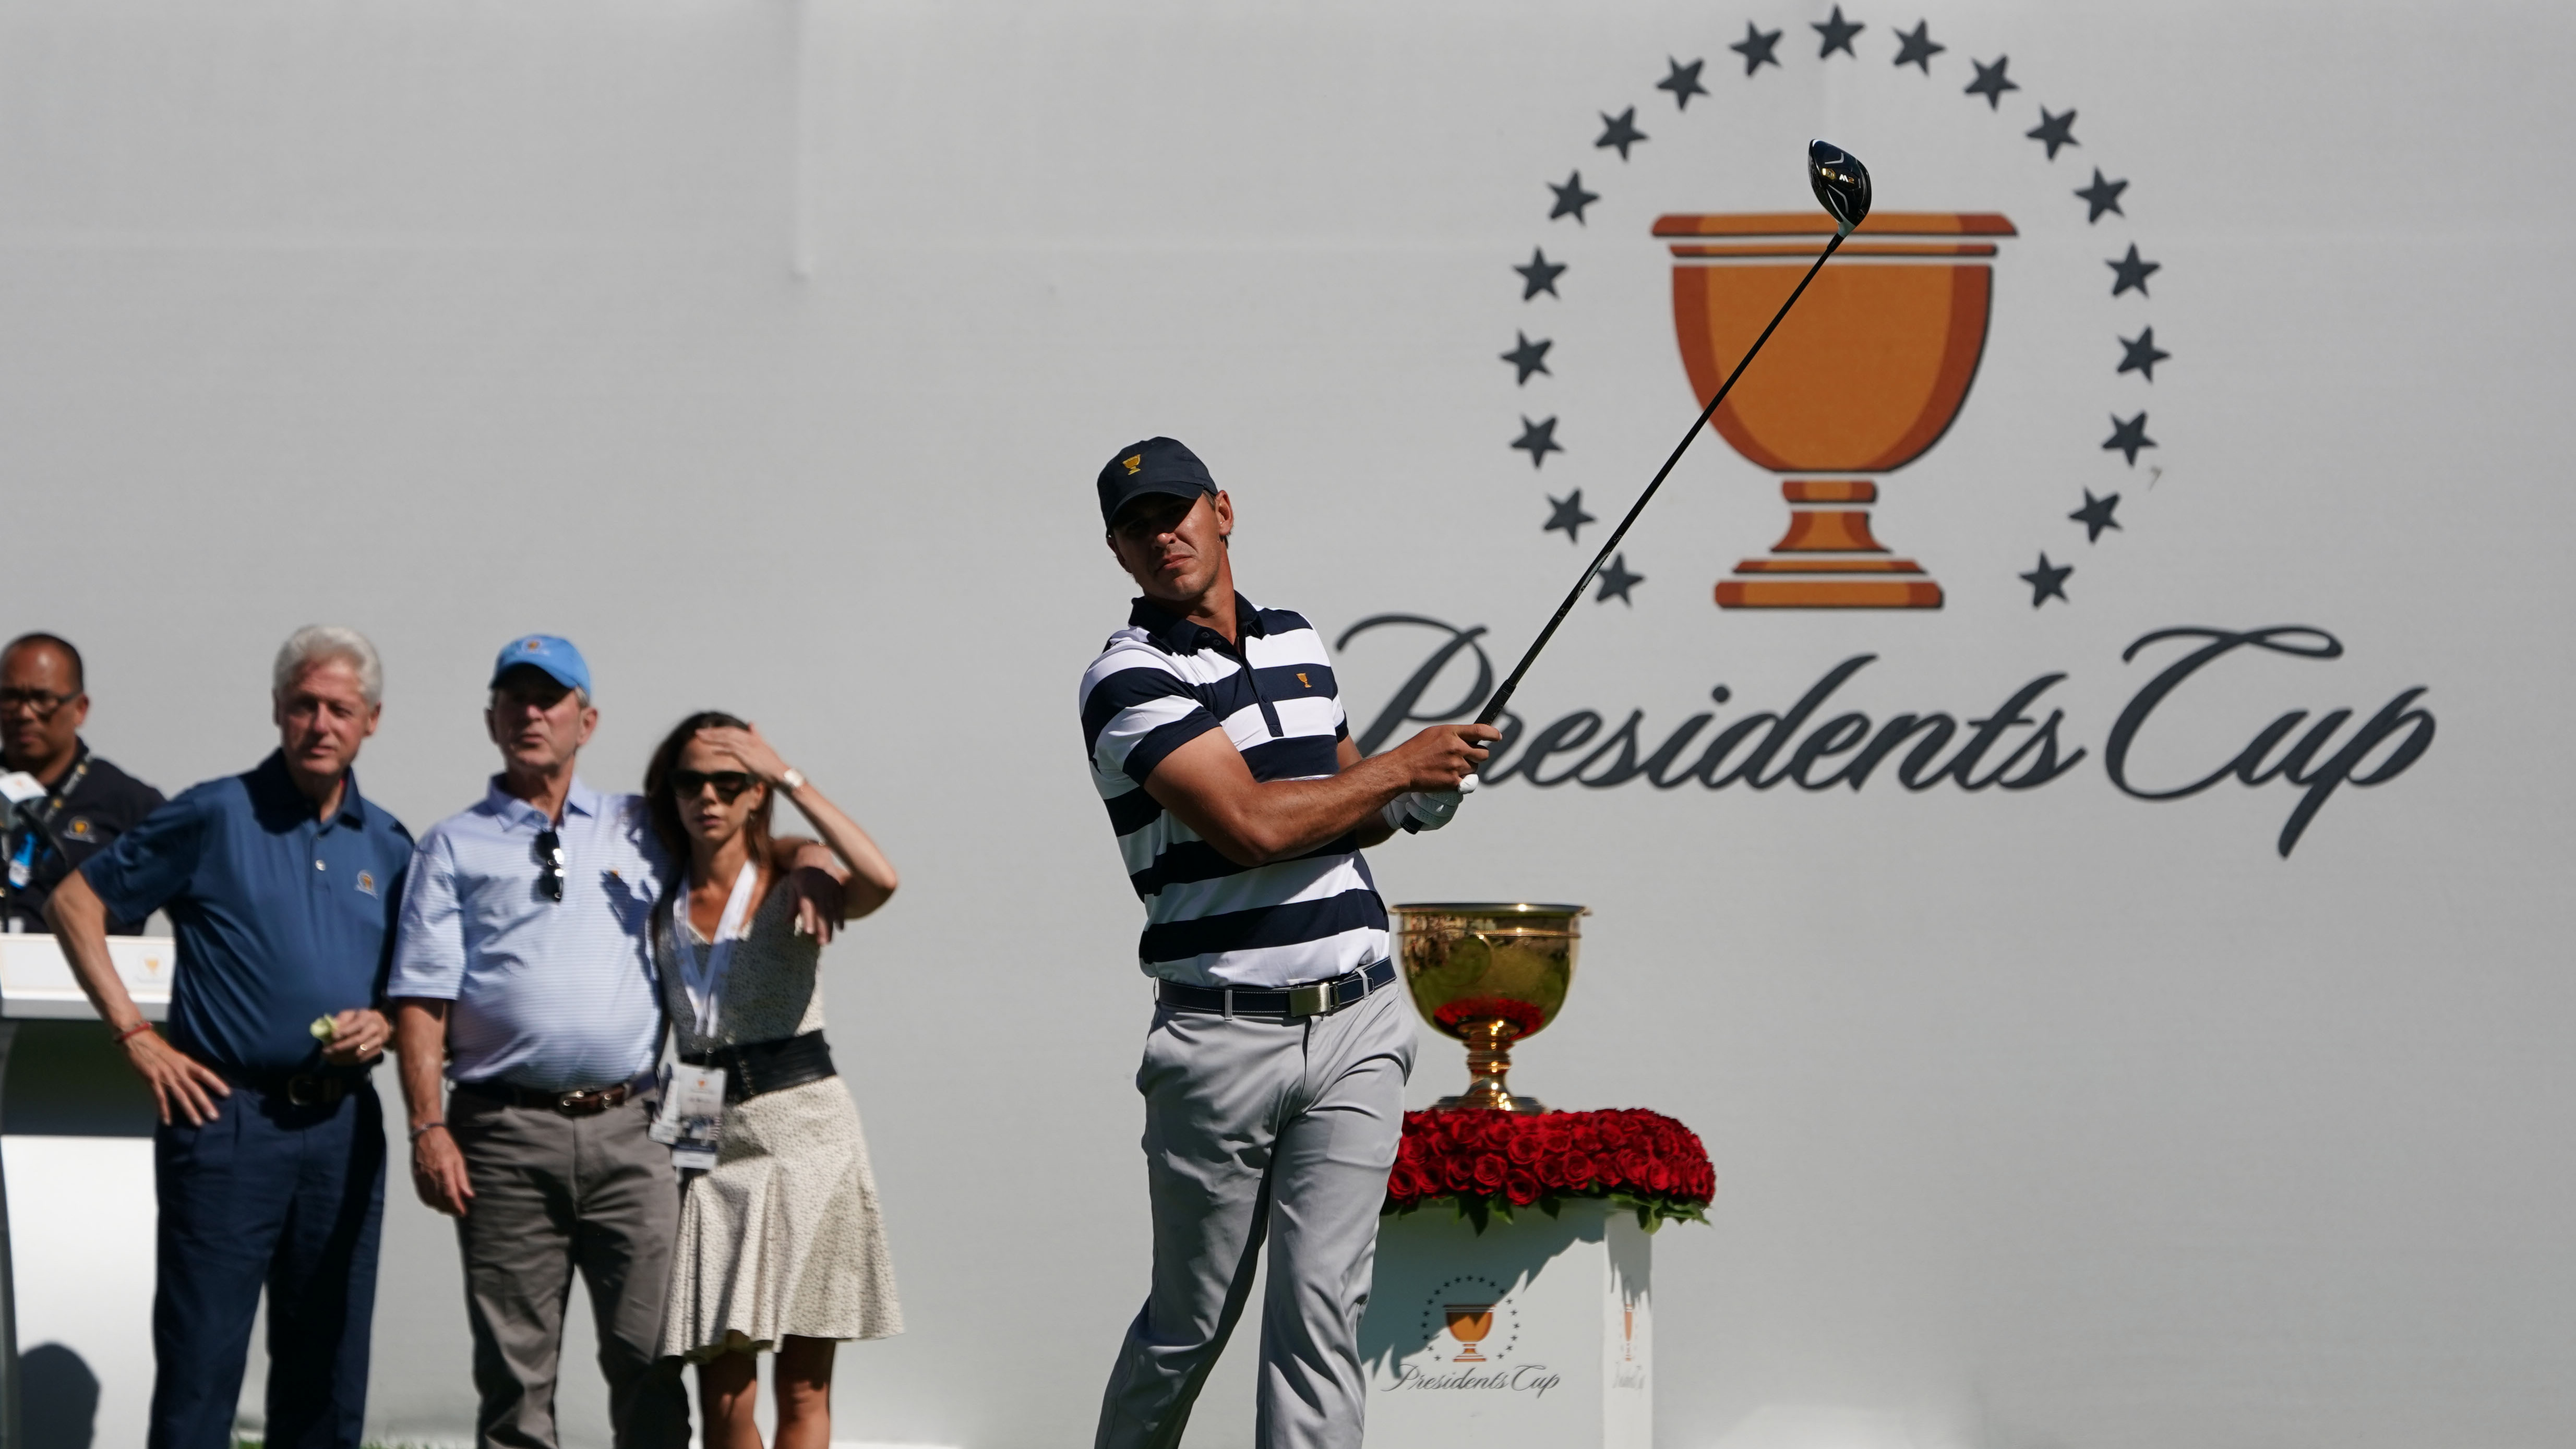 PHOTOS: Koepka and Berger Win Presidents Cup